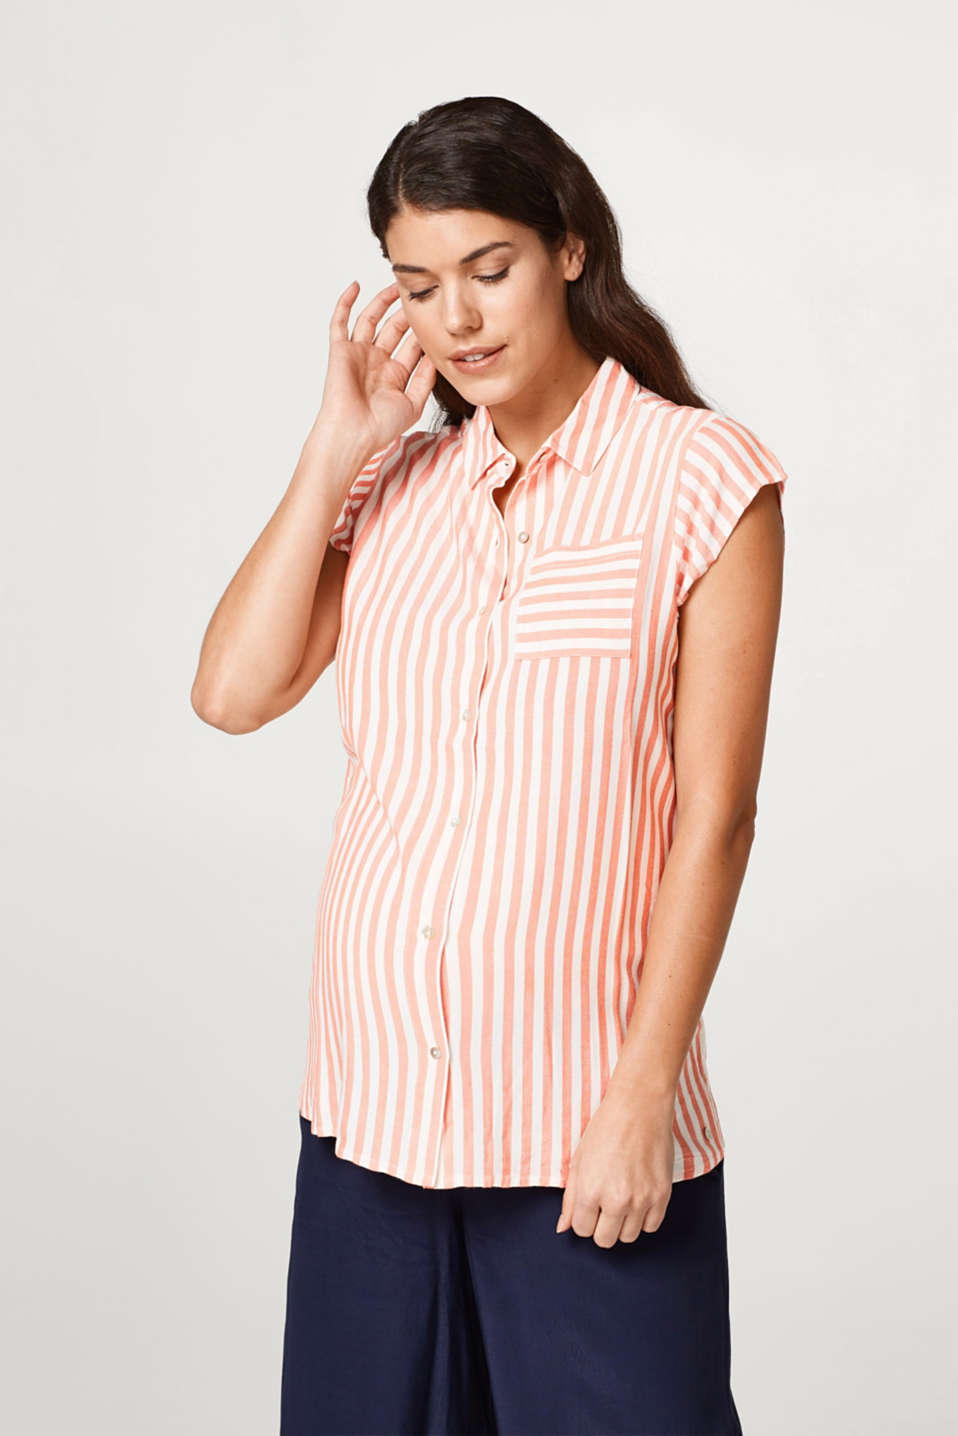 Esprit - Flowing striped blouse with breast pocket